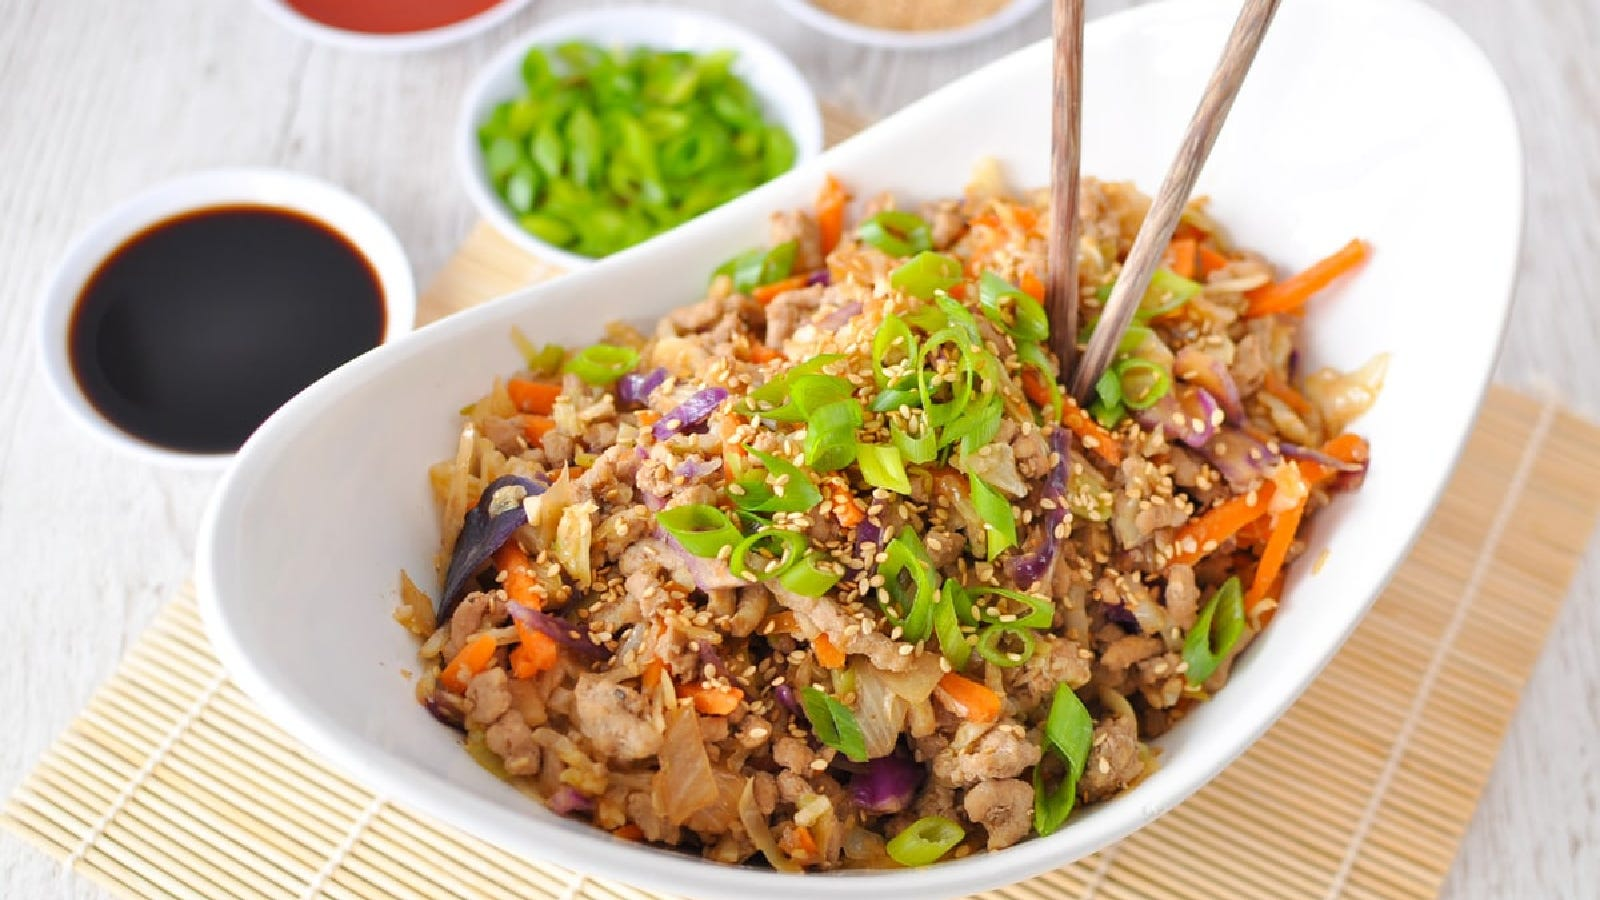 A beautiful oval serving dish filled with egg roll in a bowl, topped with sesame seeds and chopped green onions, with a bowl of soy sauce and green onions on the side.